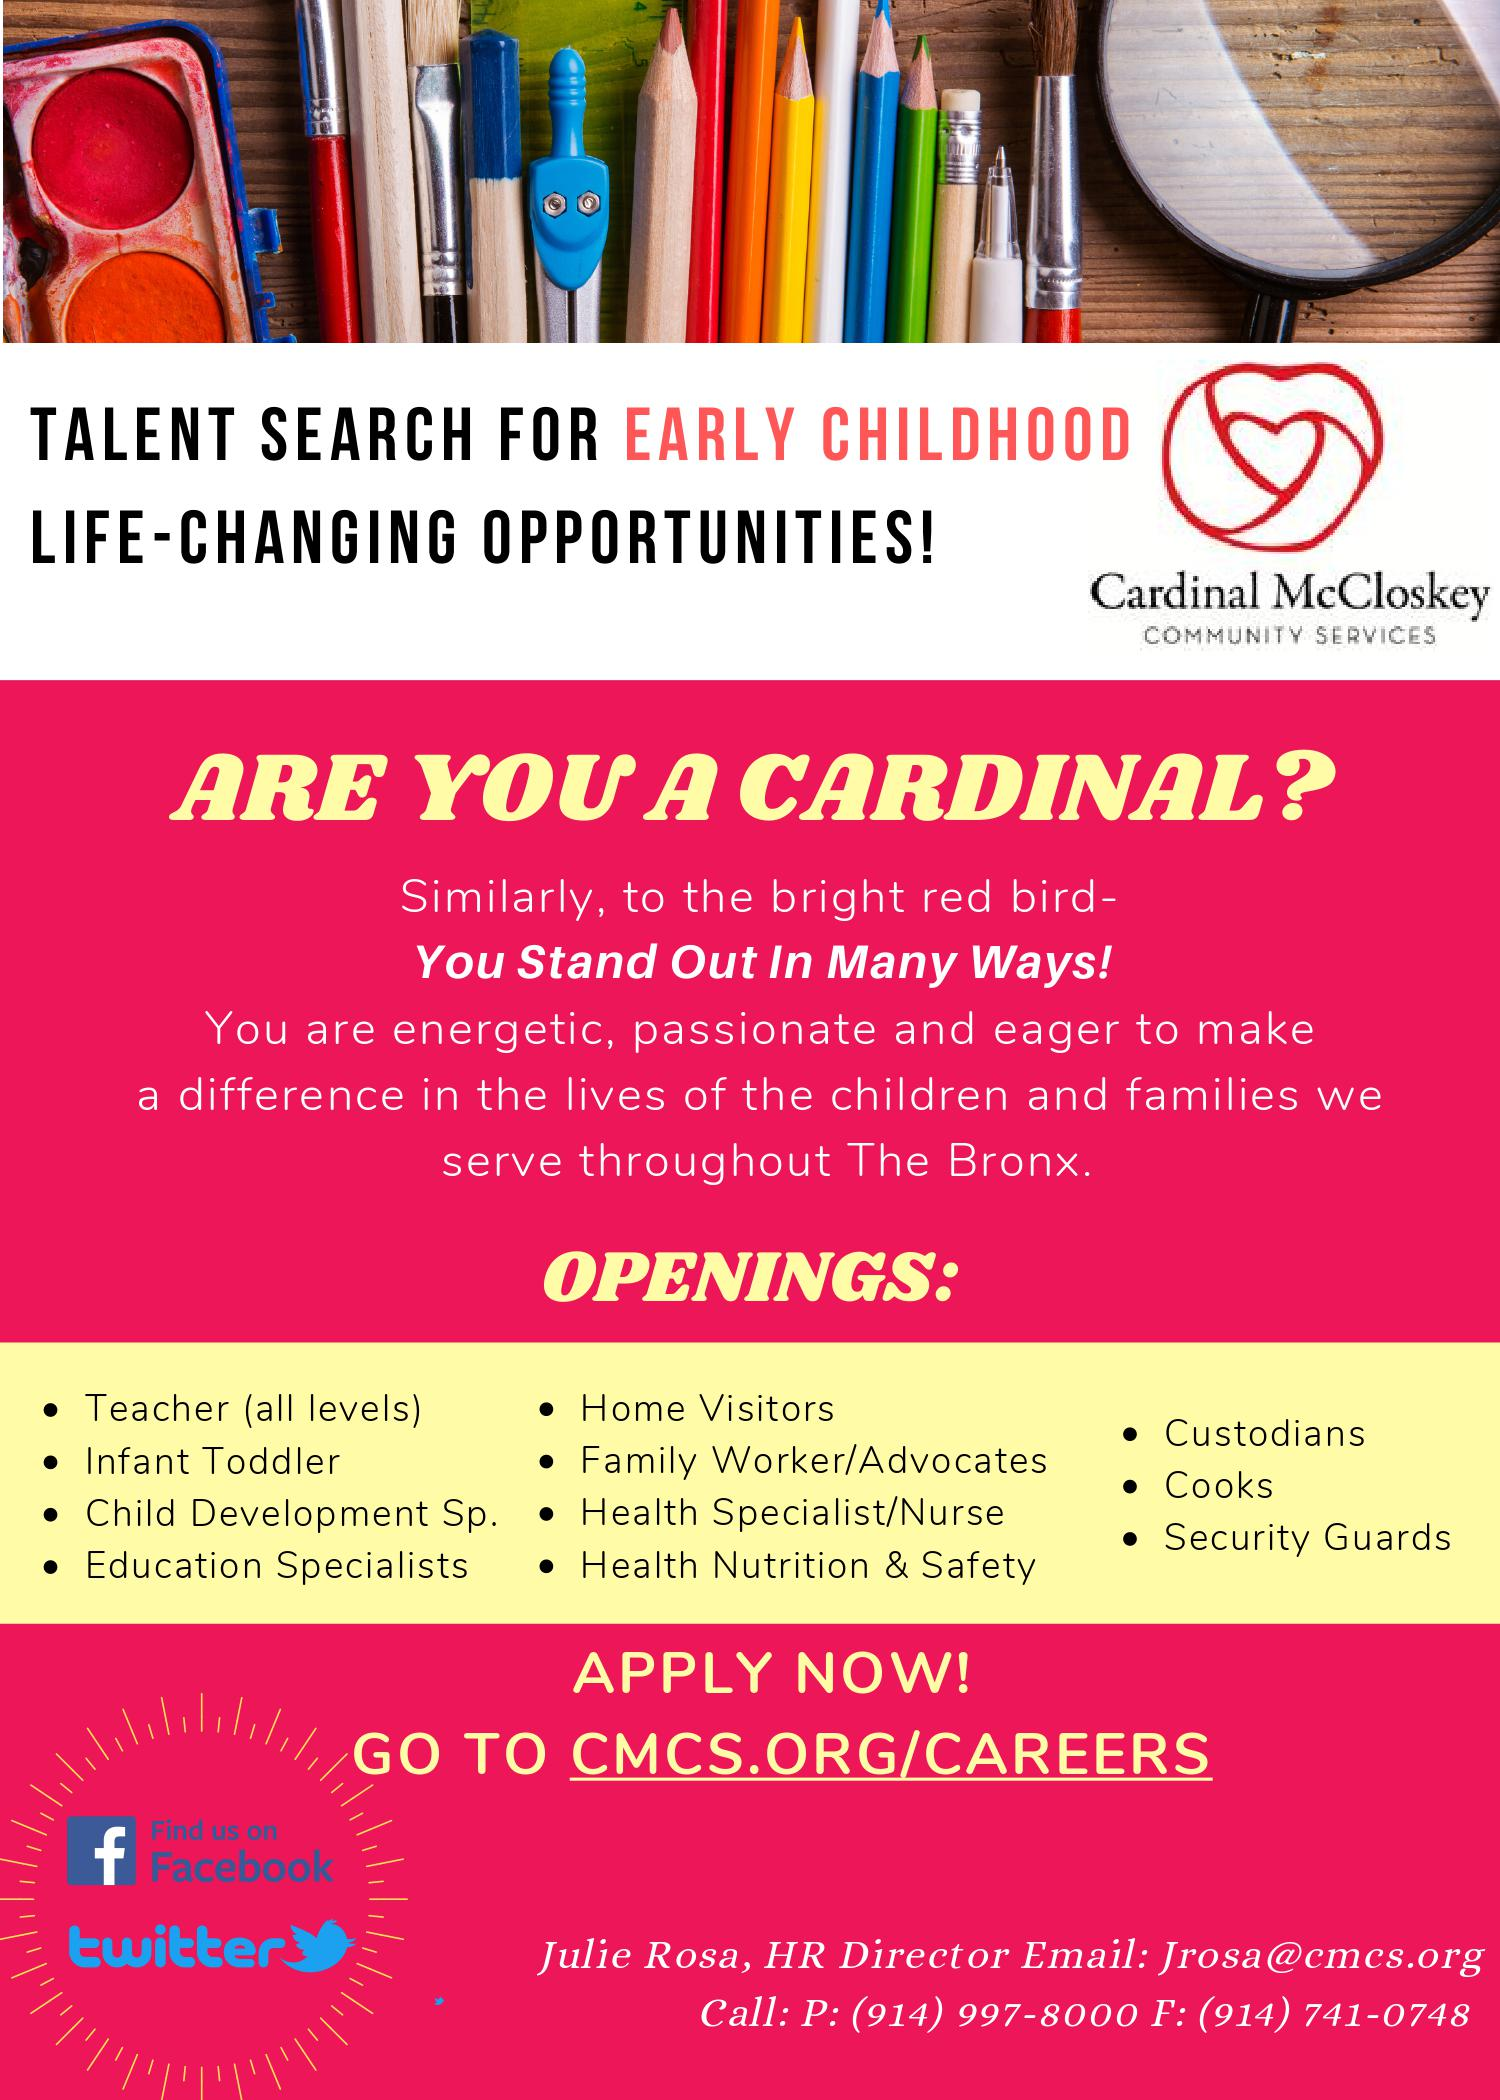 Talent Search For Early Childhood Life-Changing Opportunities